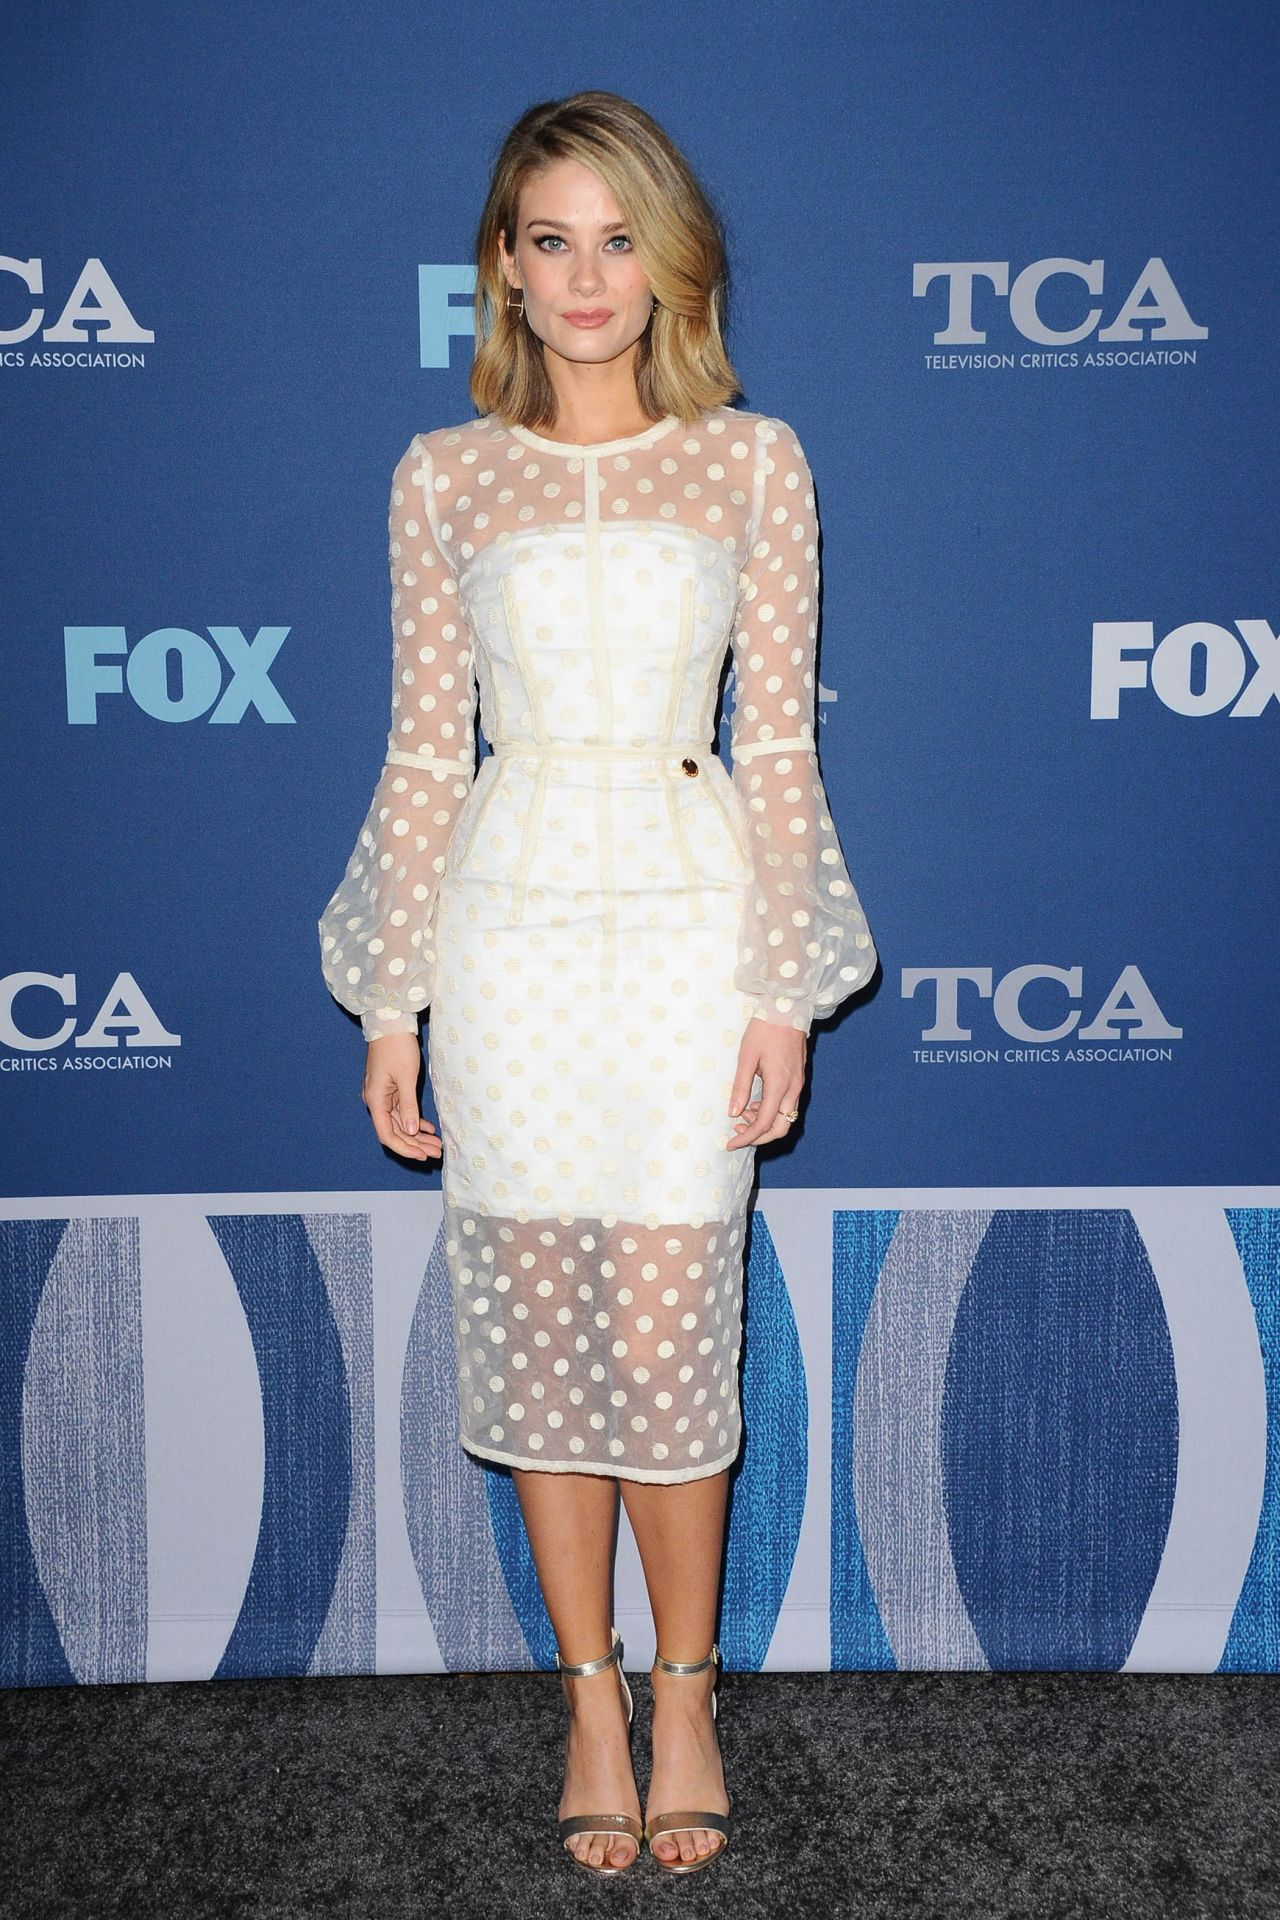 Kim Matula Fox Winter Tca 2018 All Star Party In Pasadena